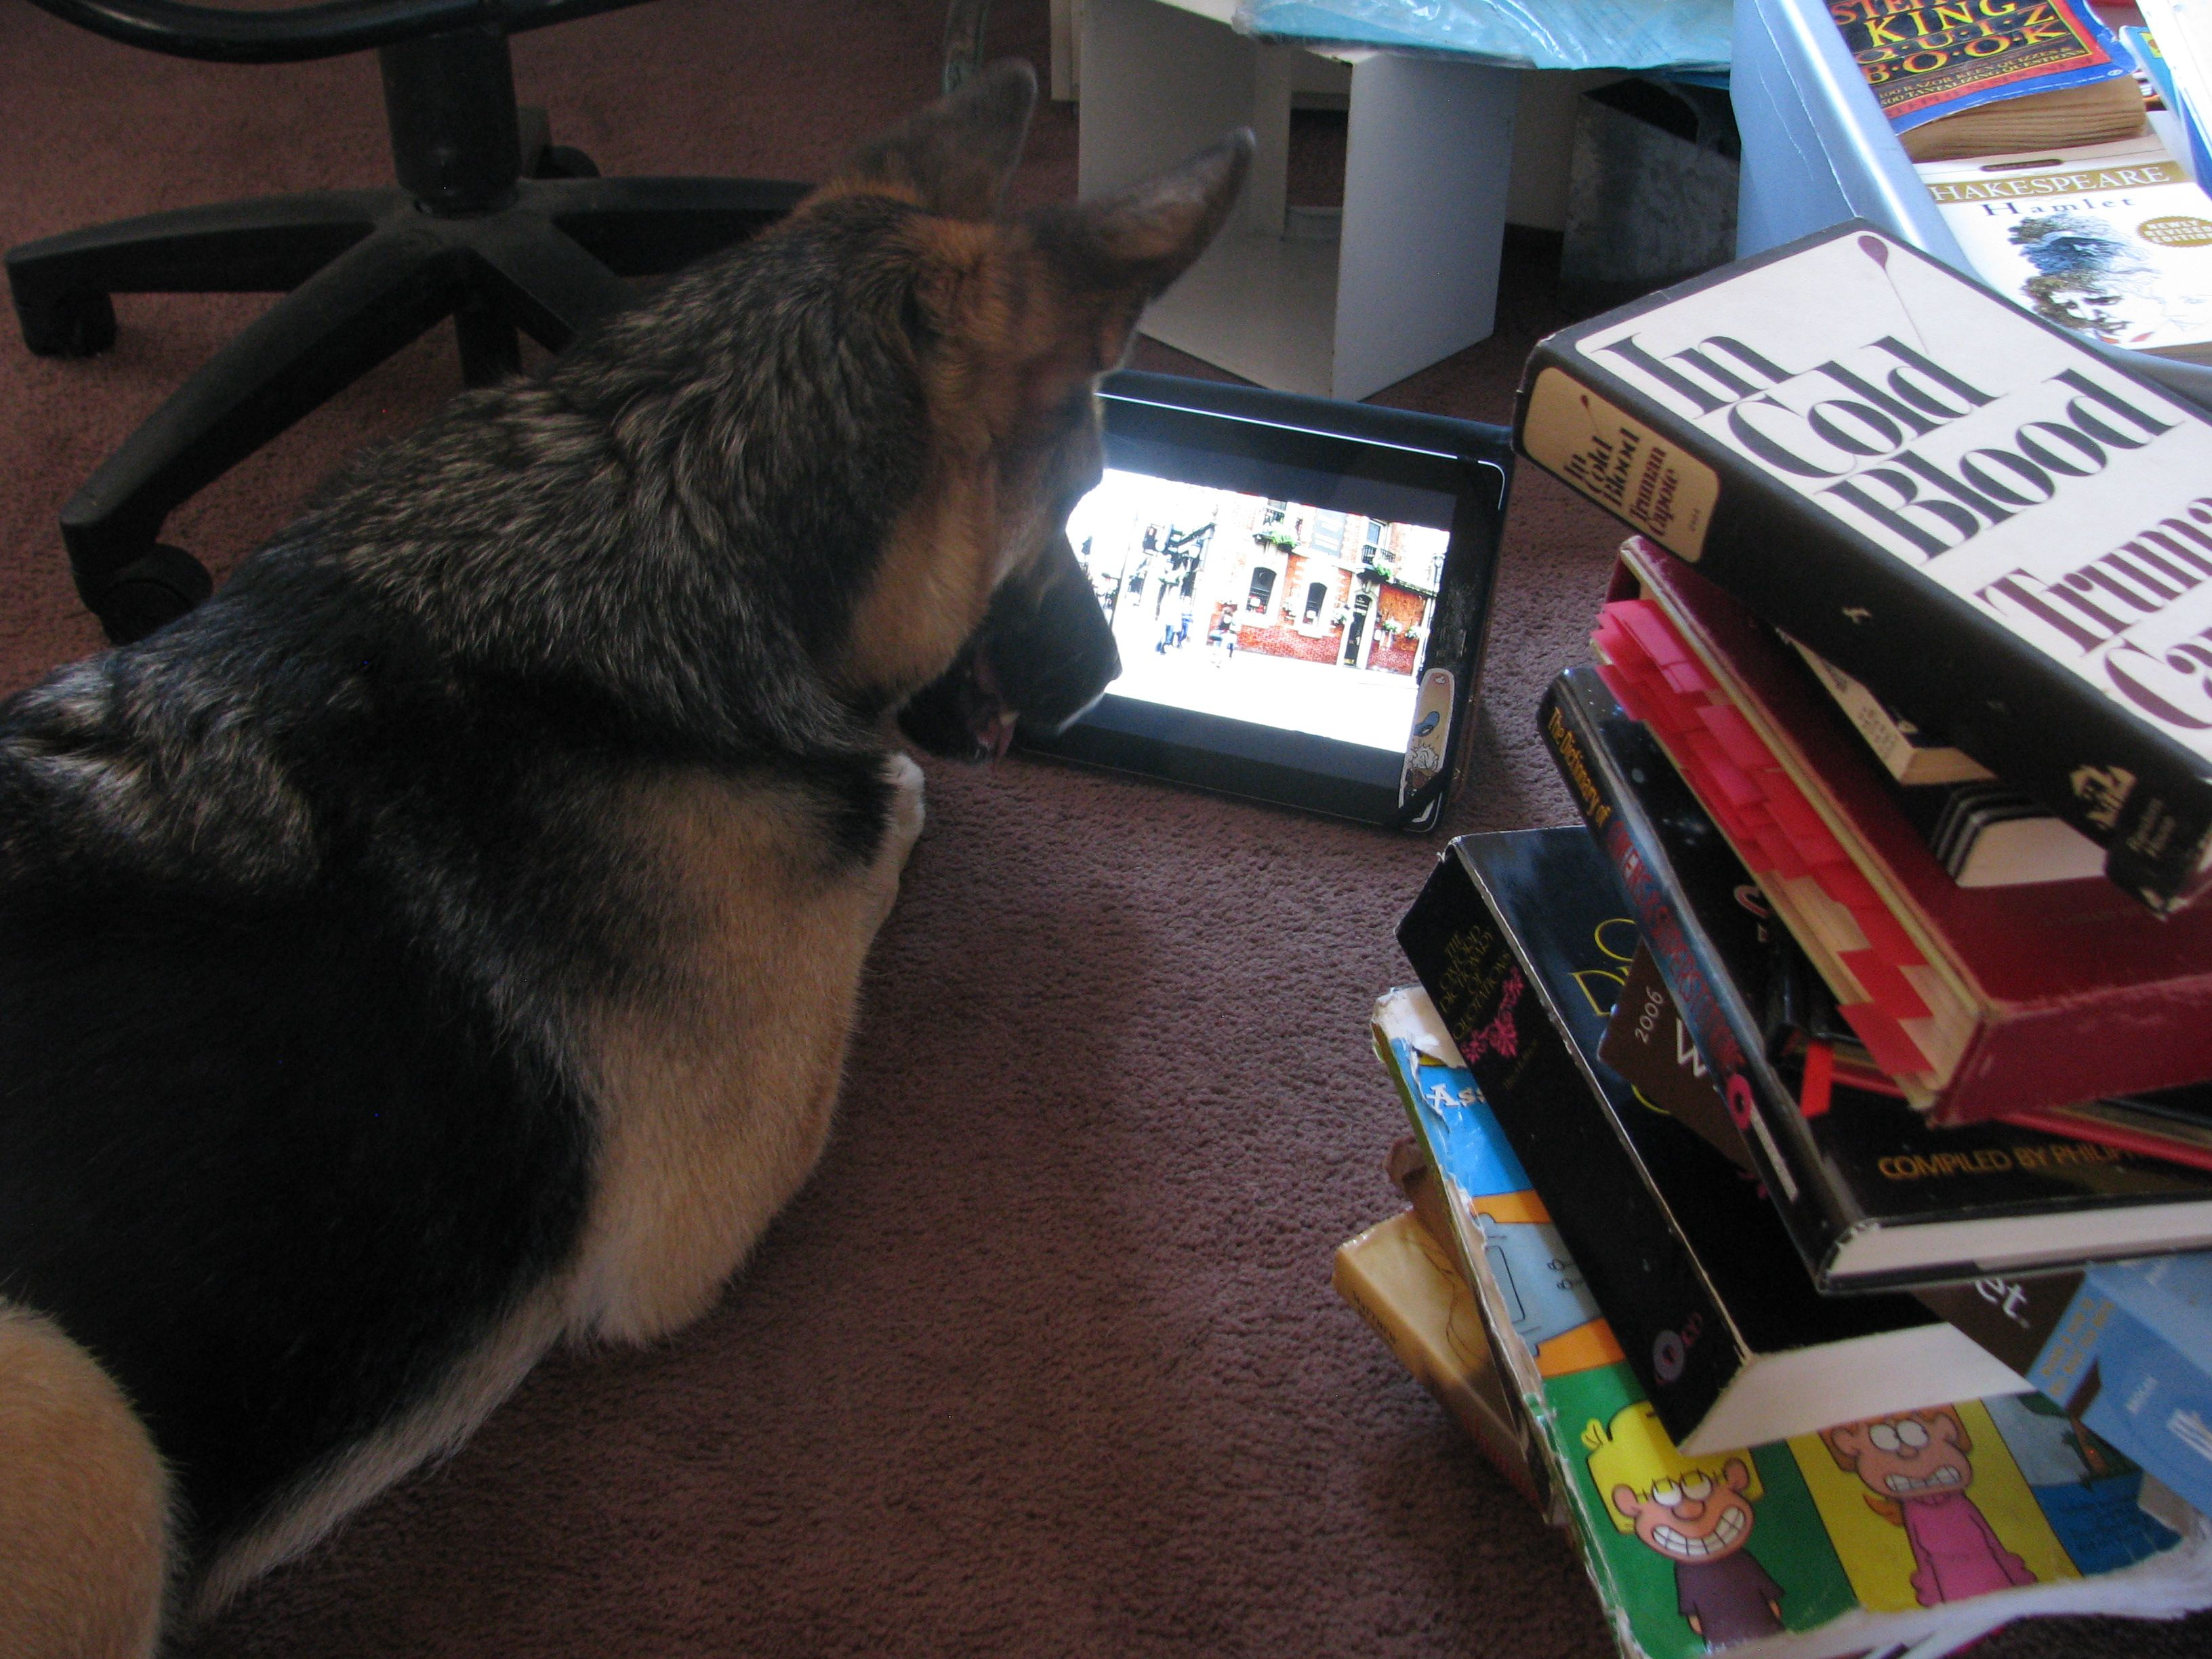 Kyreah watching a documentary about Scotland Yard.